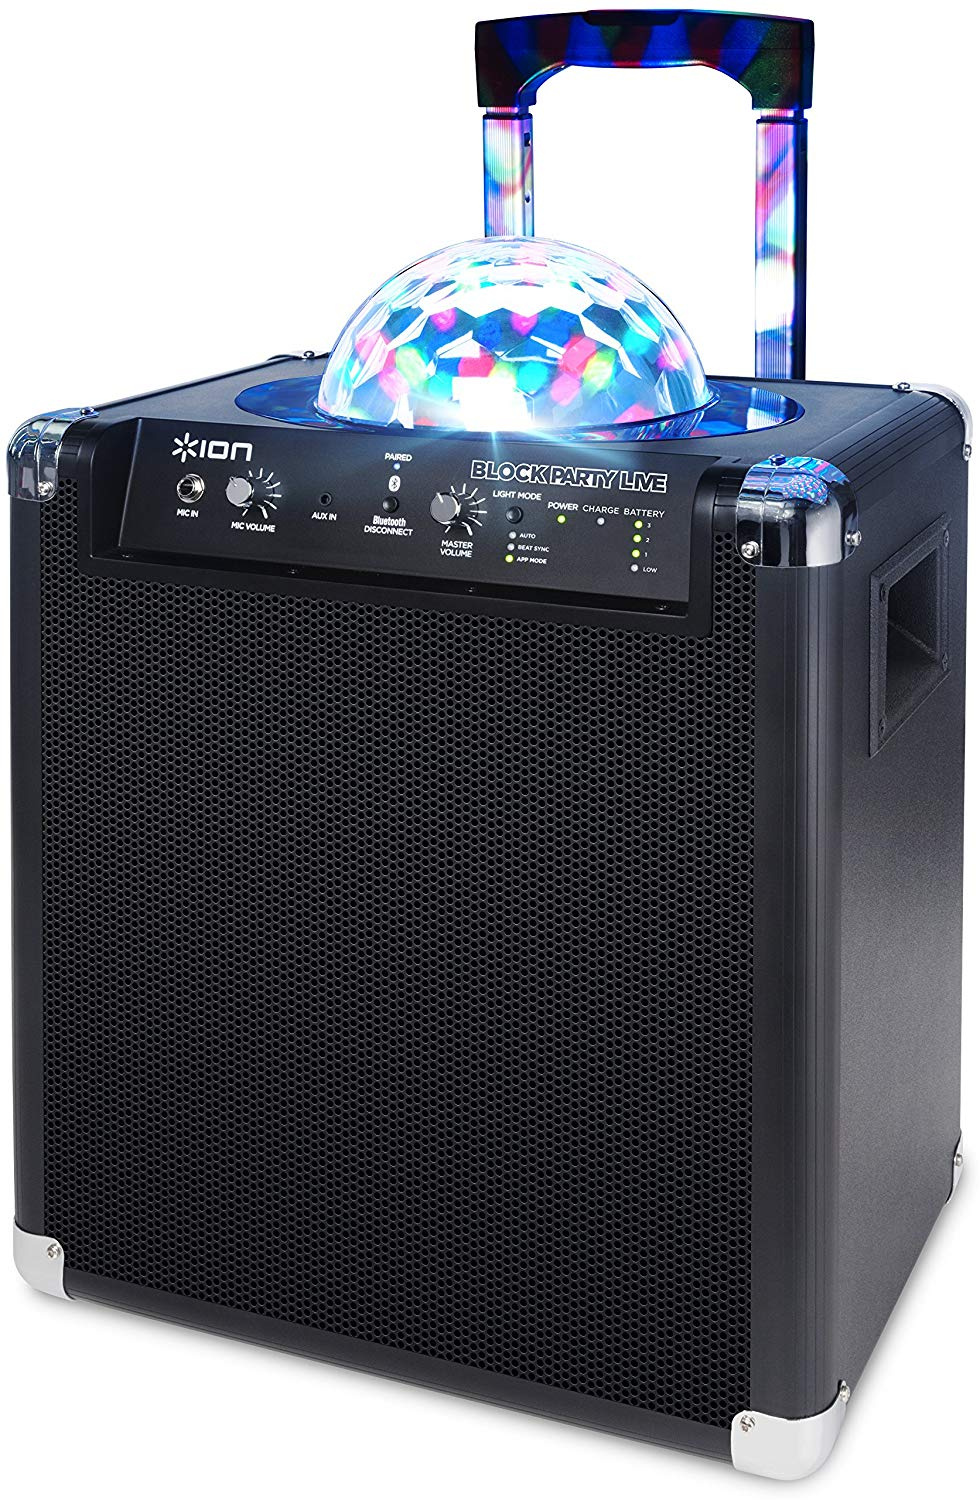 Battery Powered Speaker 50watts $25/day or weekend Bluetooth w/lighting